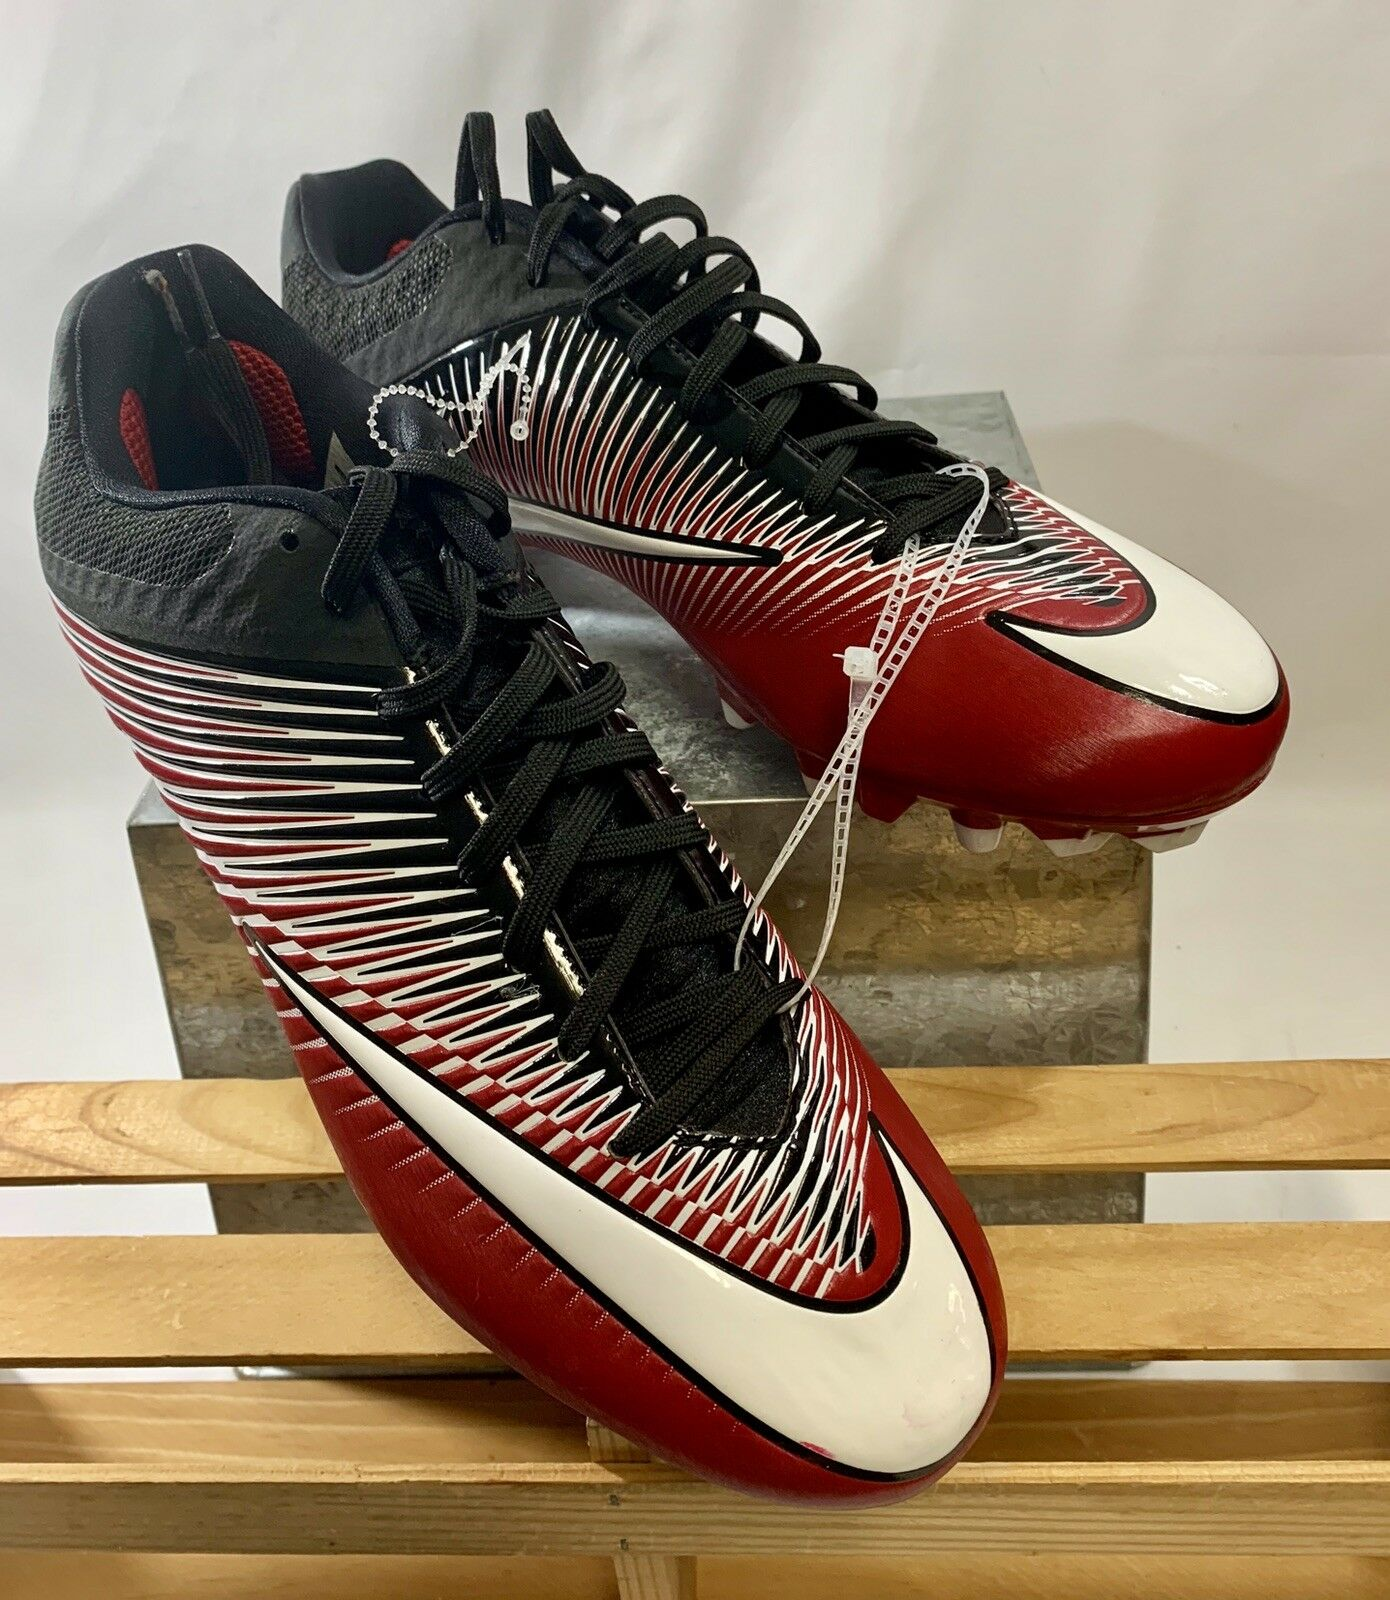 New NIKE VAPOR UNTOUCHABLE 2 WD FOOTBALL CLEATS 846805-601 SIZE 12